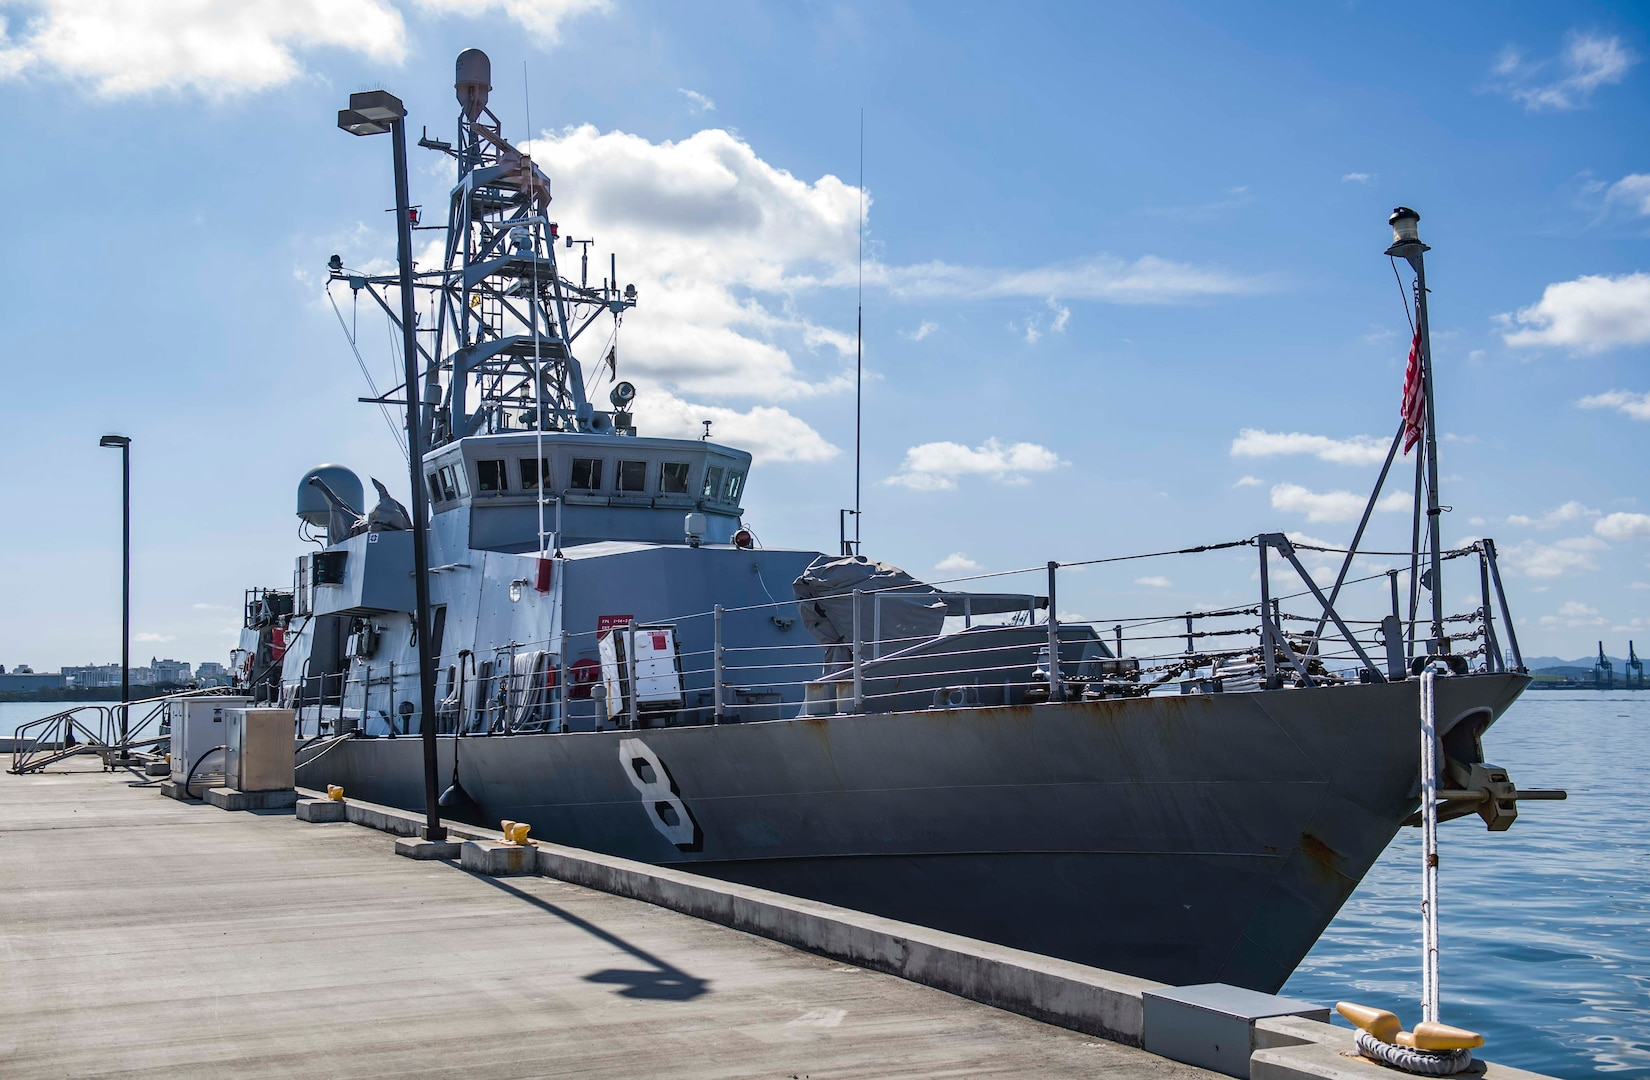 SAN JUAN, Puerto Rico (April 17, 2017) - The Cyclone-class patrol coastal ship USS Zephyr (PC 8) is docked at U.S. Coast Guard station San Juan. Zephyr is currently underway in support of Operation Martillo, a joint operation with the U.S. Coast Guard and partner nations, within the 4th Fleet area of responsibility. (U.S. Navy photo by Mass Commuication Specialist 3rd Class Casey J. Hopkins/Released)